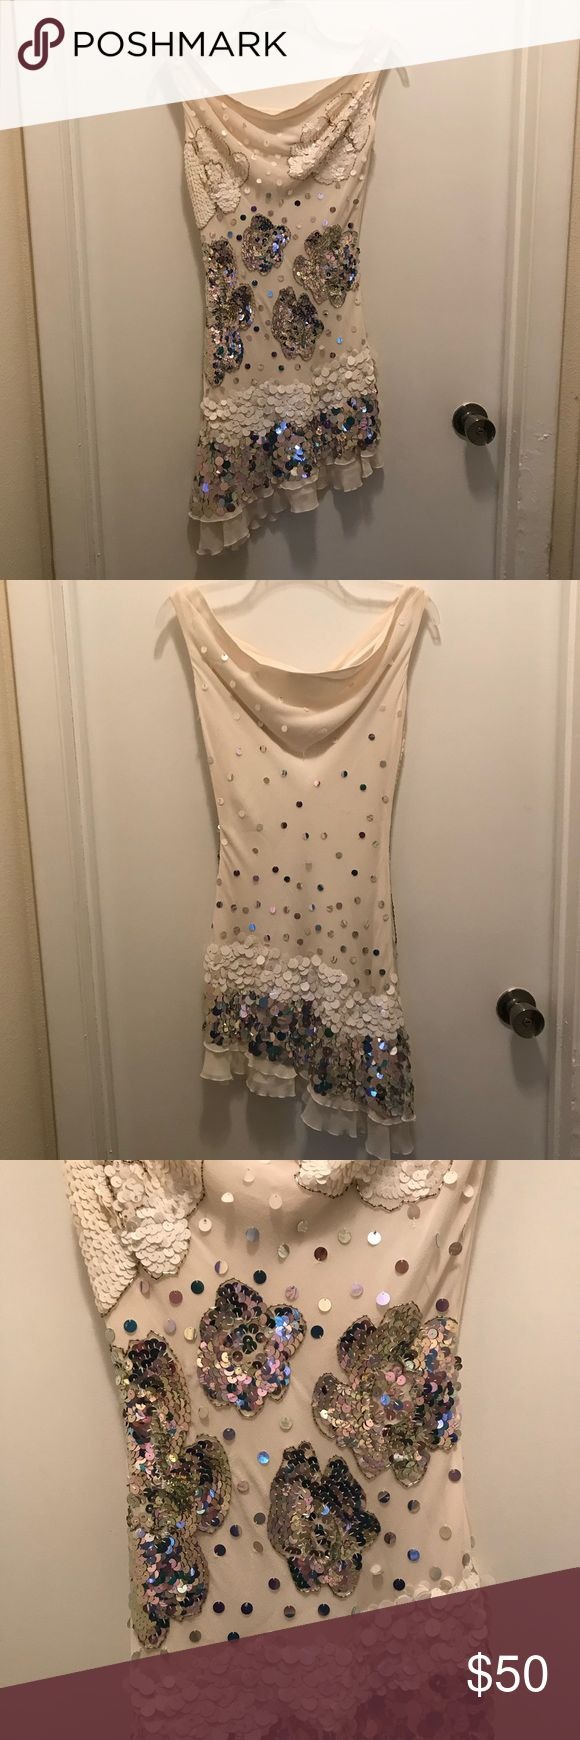 Marciano sequin dress Marciano sequin dress. Cream colored dress with silver and cream sequins. Asymmetrical hem. Excellent condition. Perfect for a night out Marciano Dresses Asymmetrical